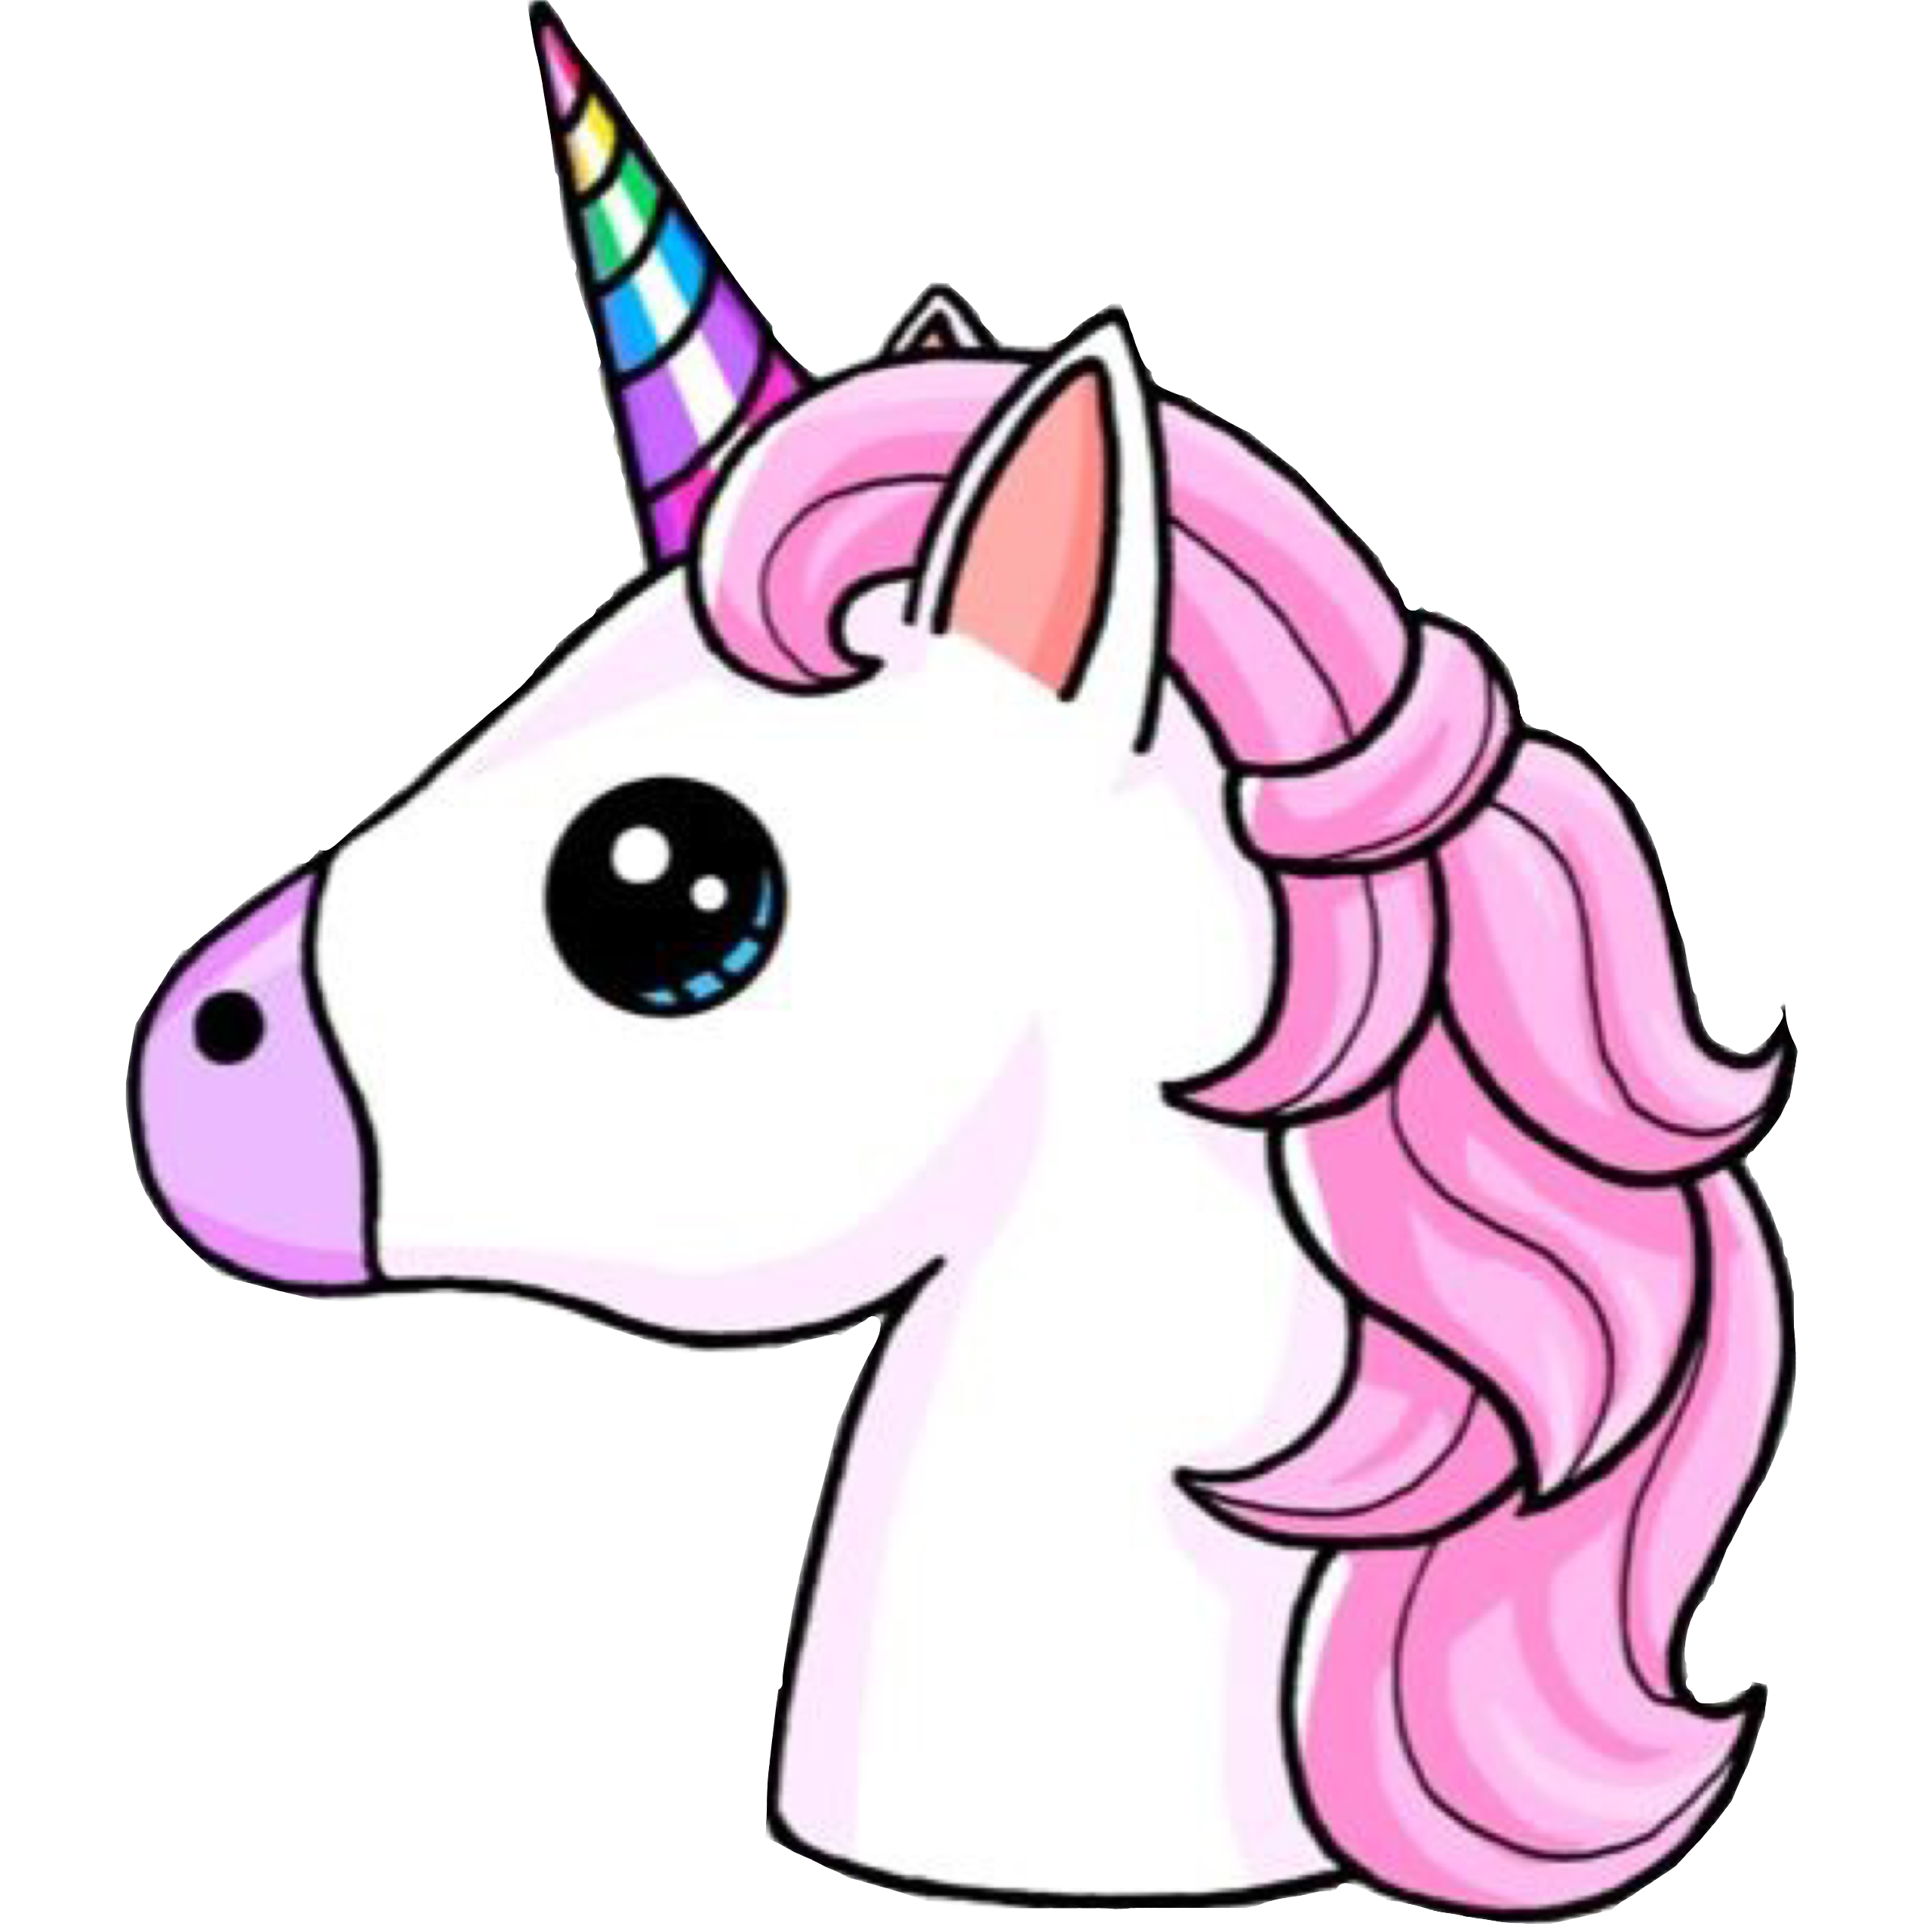 2560x2560 Unicorn, Emoji, Drawing, Pink, Horse Png Image With ...